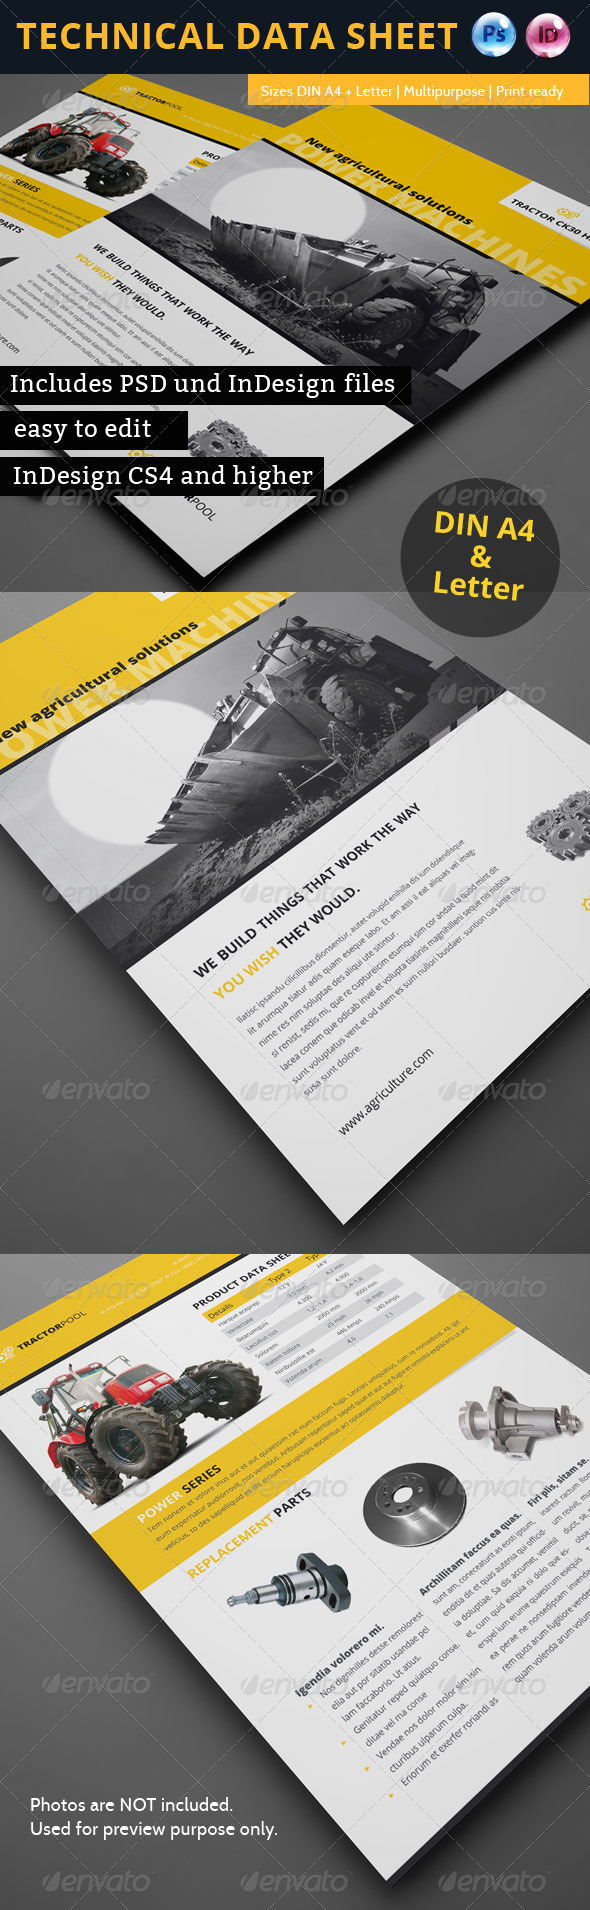 Technical Data or Product Sheet - Corporate Flyers